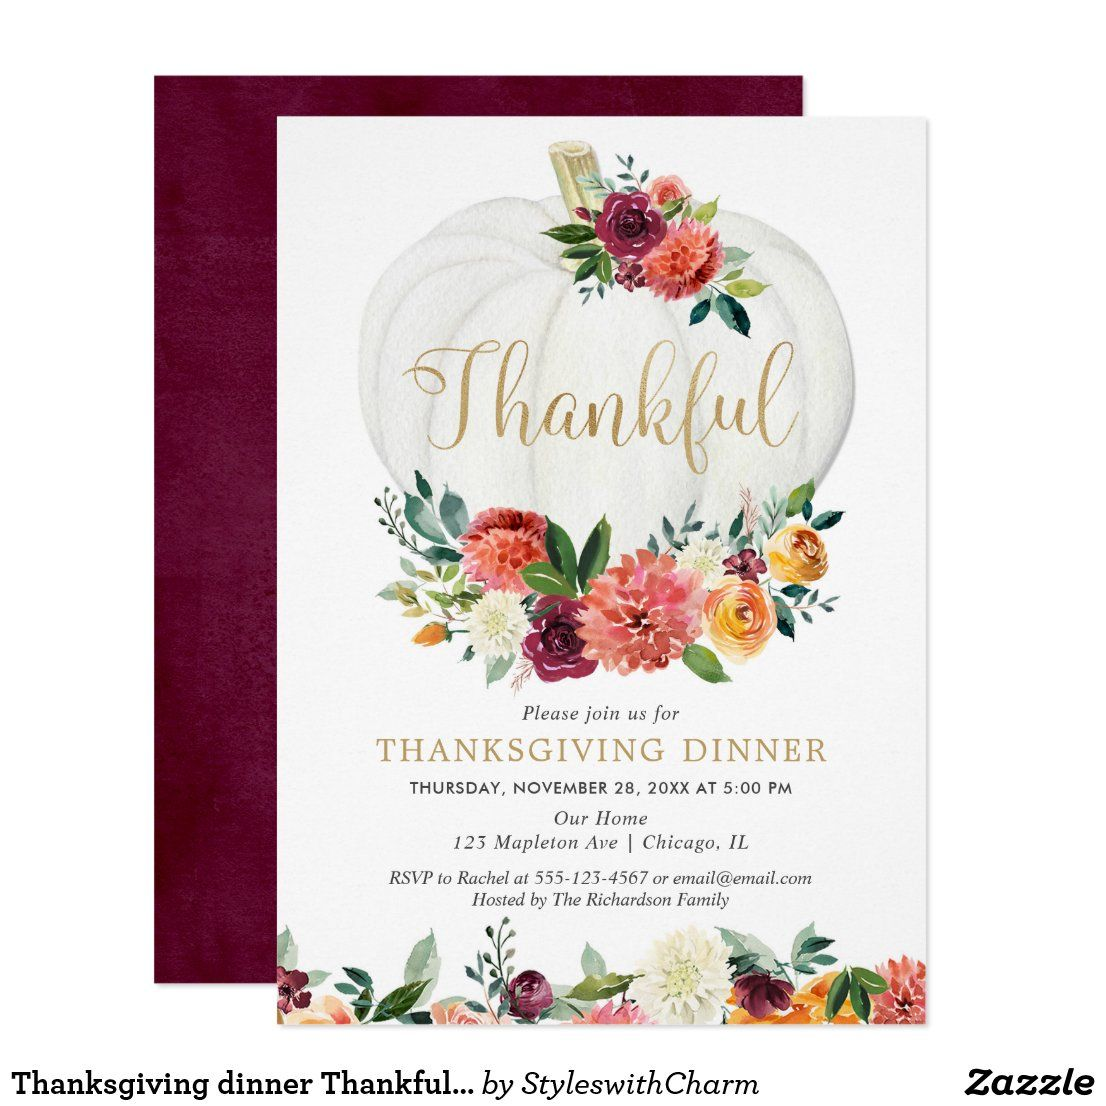 Thanksgiving dinner Thankful rustic fall floral Invitation #thanksgiving #givethanks #thanksgivingdinner #thanksgivingparty #styledevents #afflink #zazzle #zazzlemade #styledparties #celebrateandparty #celebrationparty #party #partyinspiration #partystyling #partydecoration #partyideas #partyinspo #partytheme #partyprops #eventinspo #eventplanning #eventideas #partythemethursday #partythemeideas #partyinabox